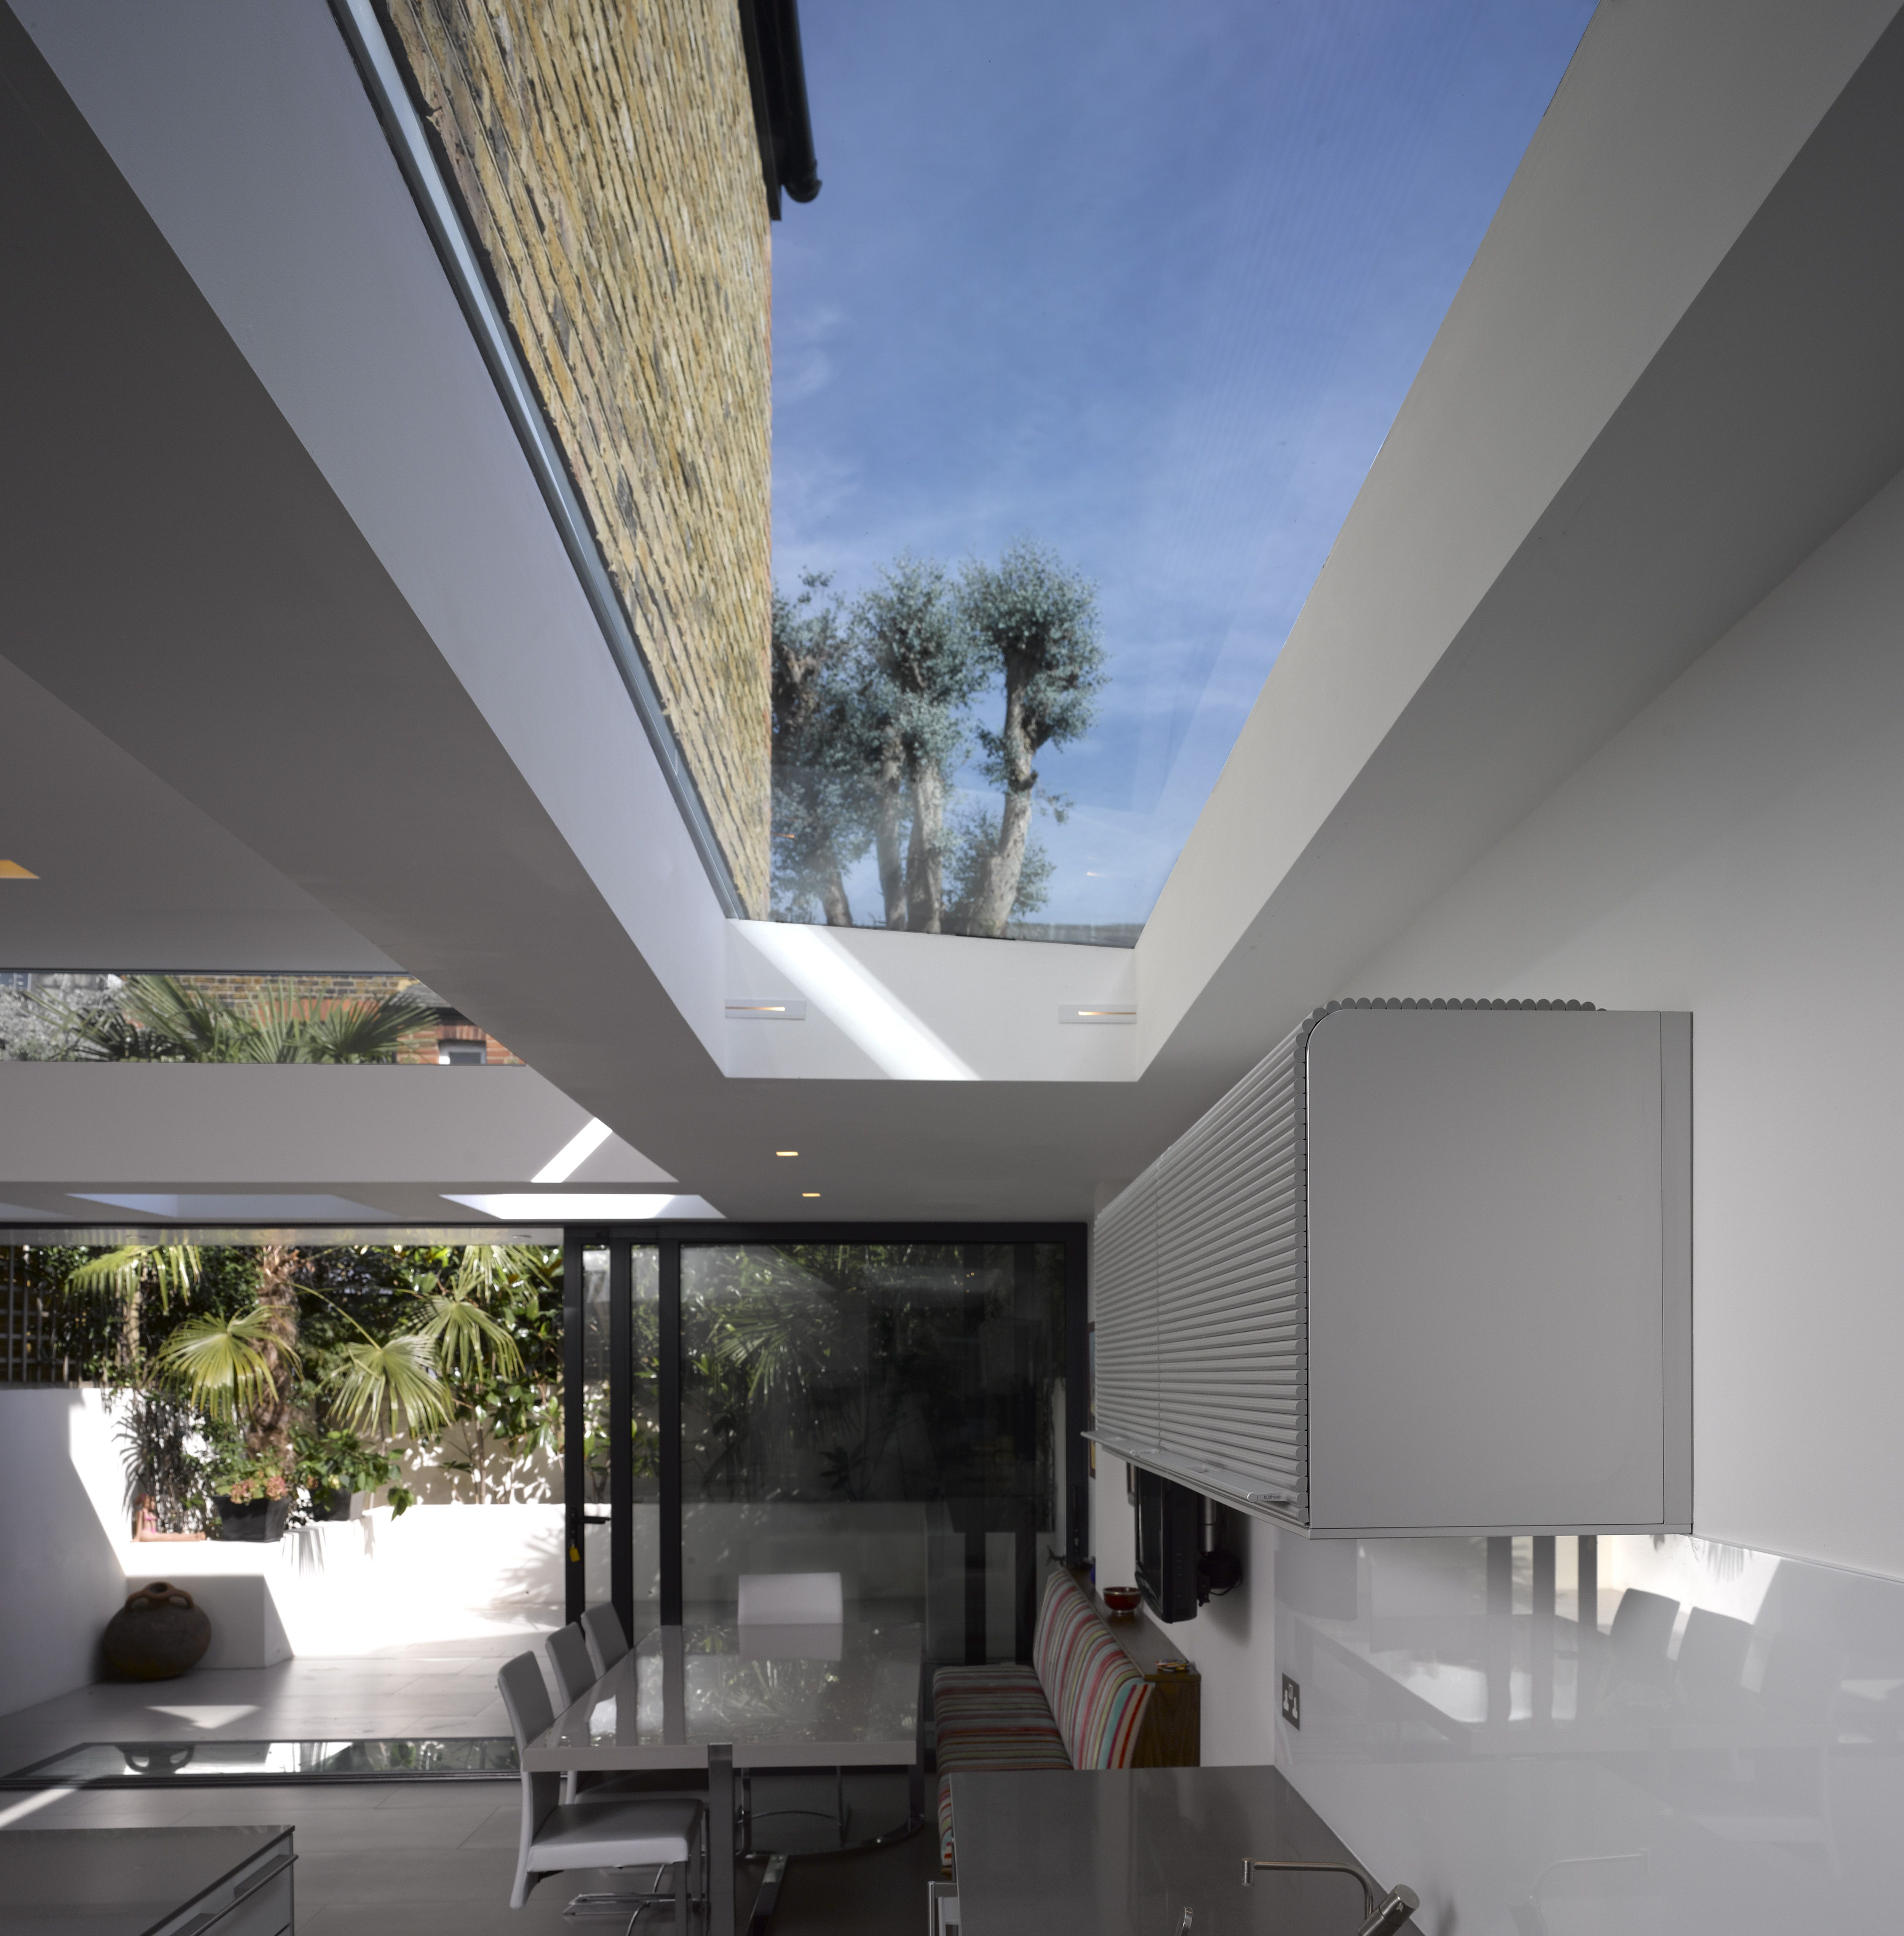 skylight private house london sw6 giles pike architects roof lights and lightwells. Black Bedroom Furniture Sets. Home Design Ideas